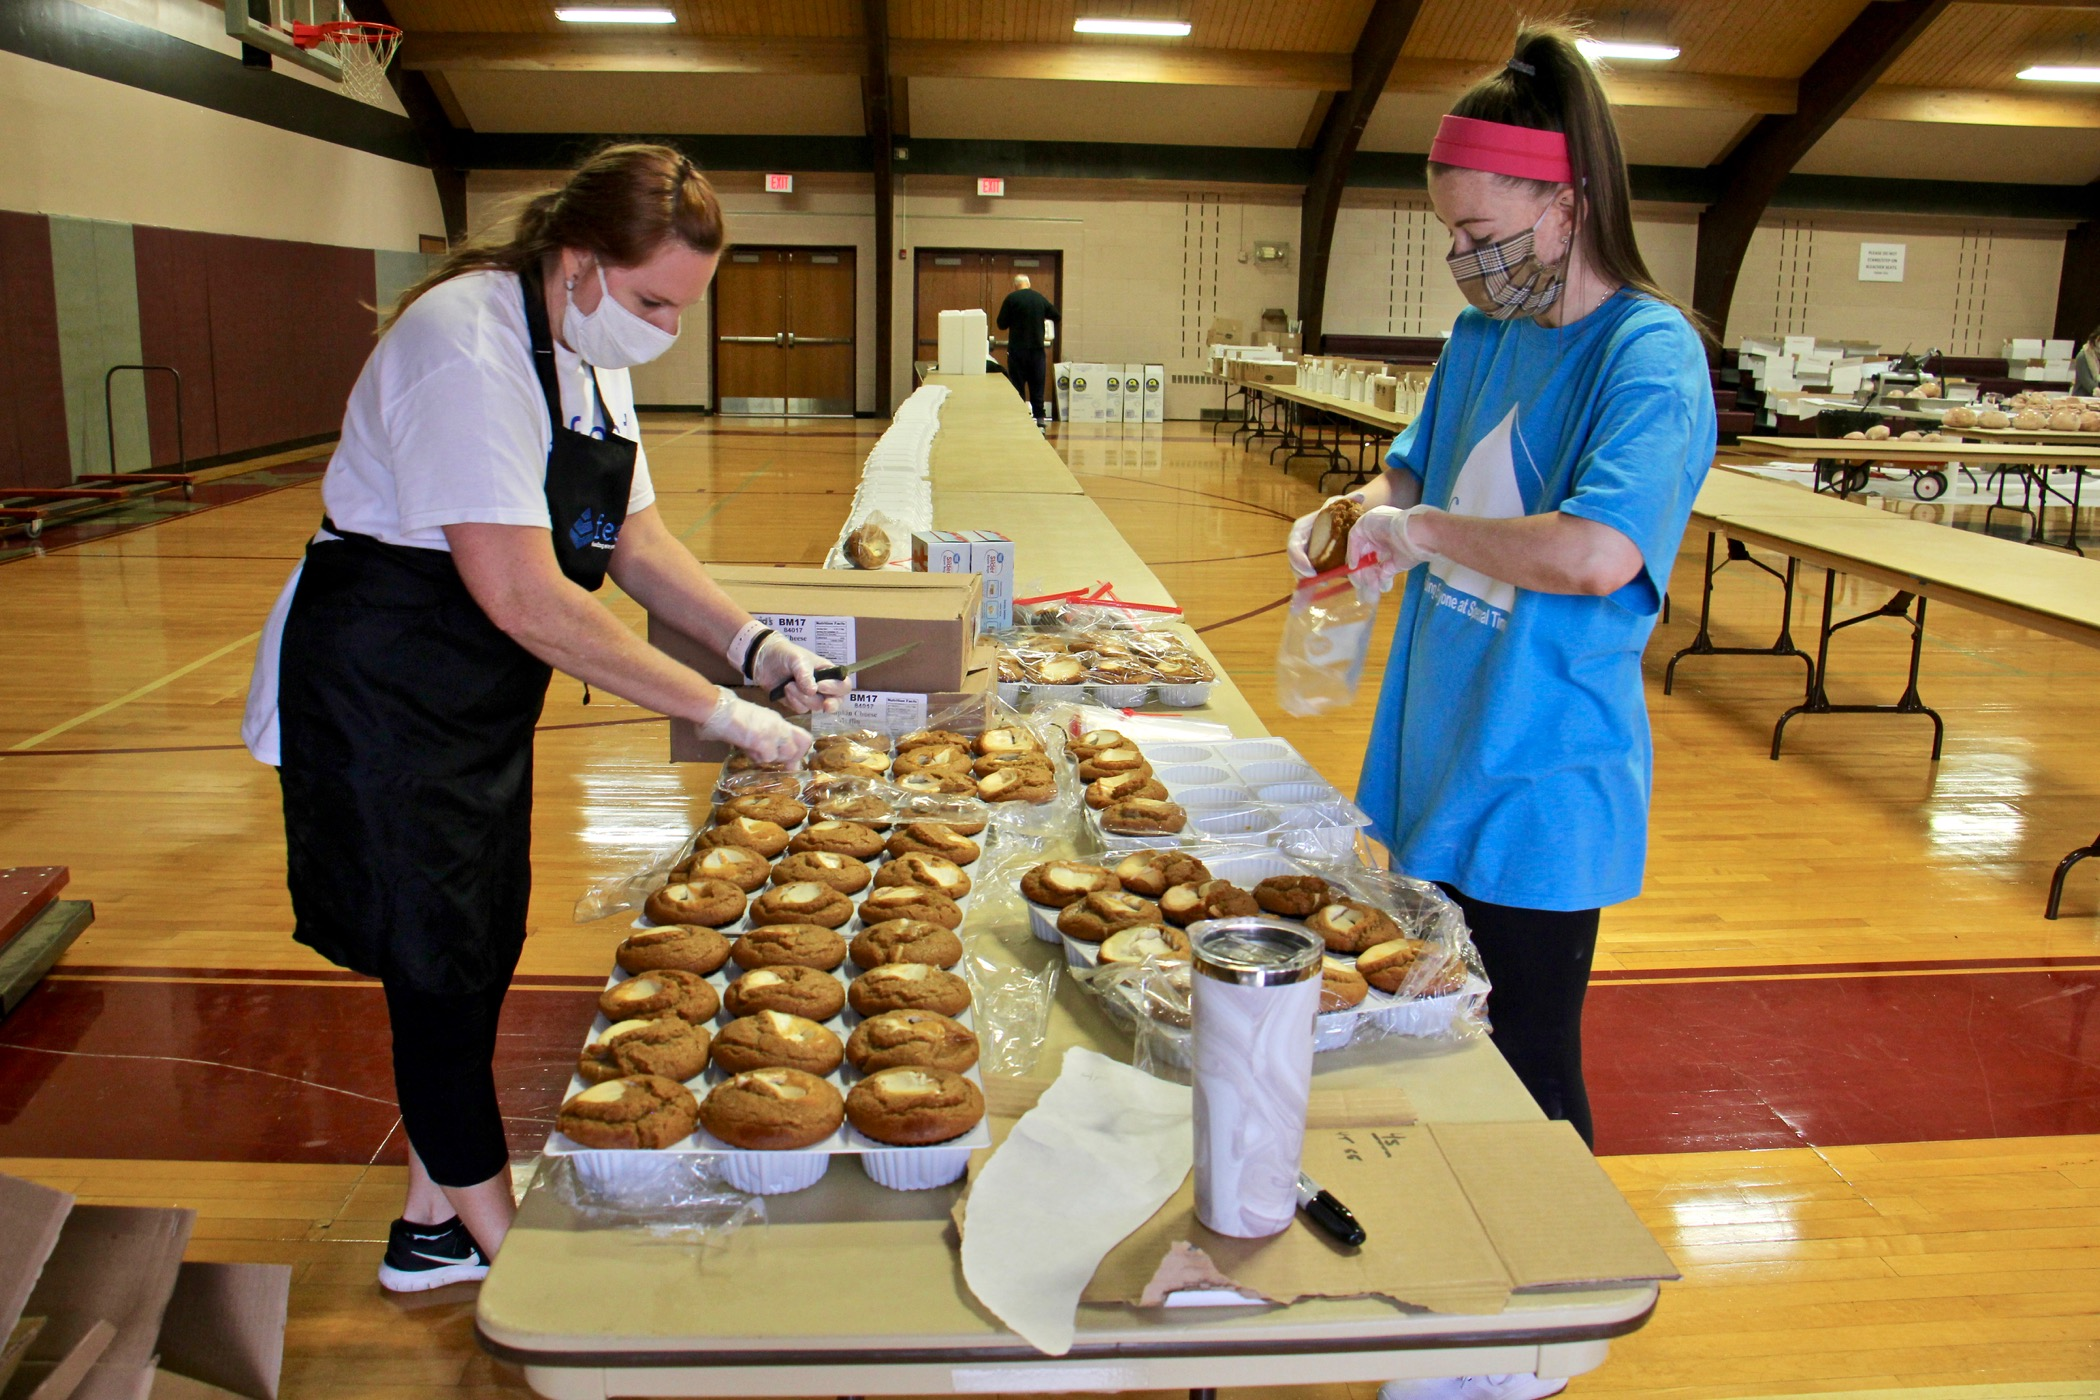 Colleen Fuchs (left) and Natalie Capobianco put together Thanksgliving meals at St. Robert Bellarmine Church